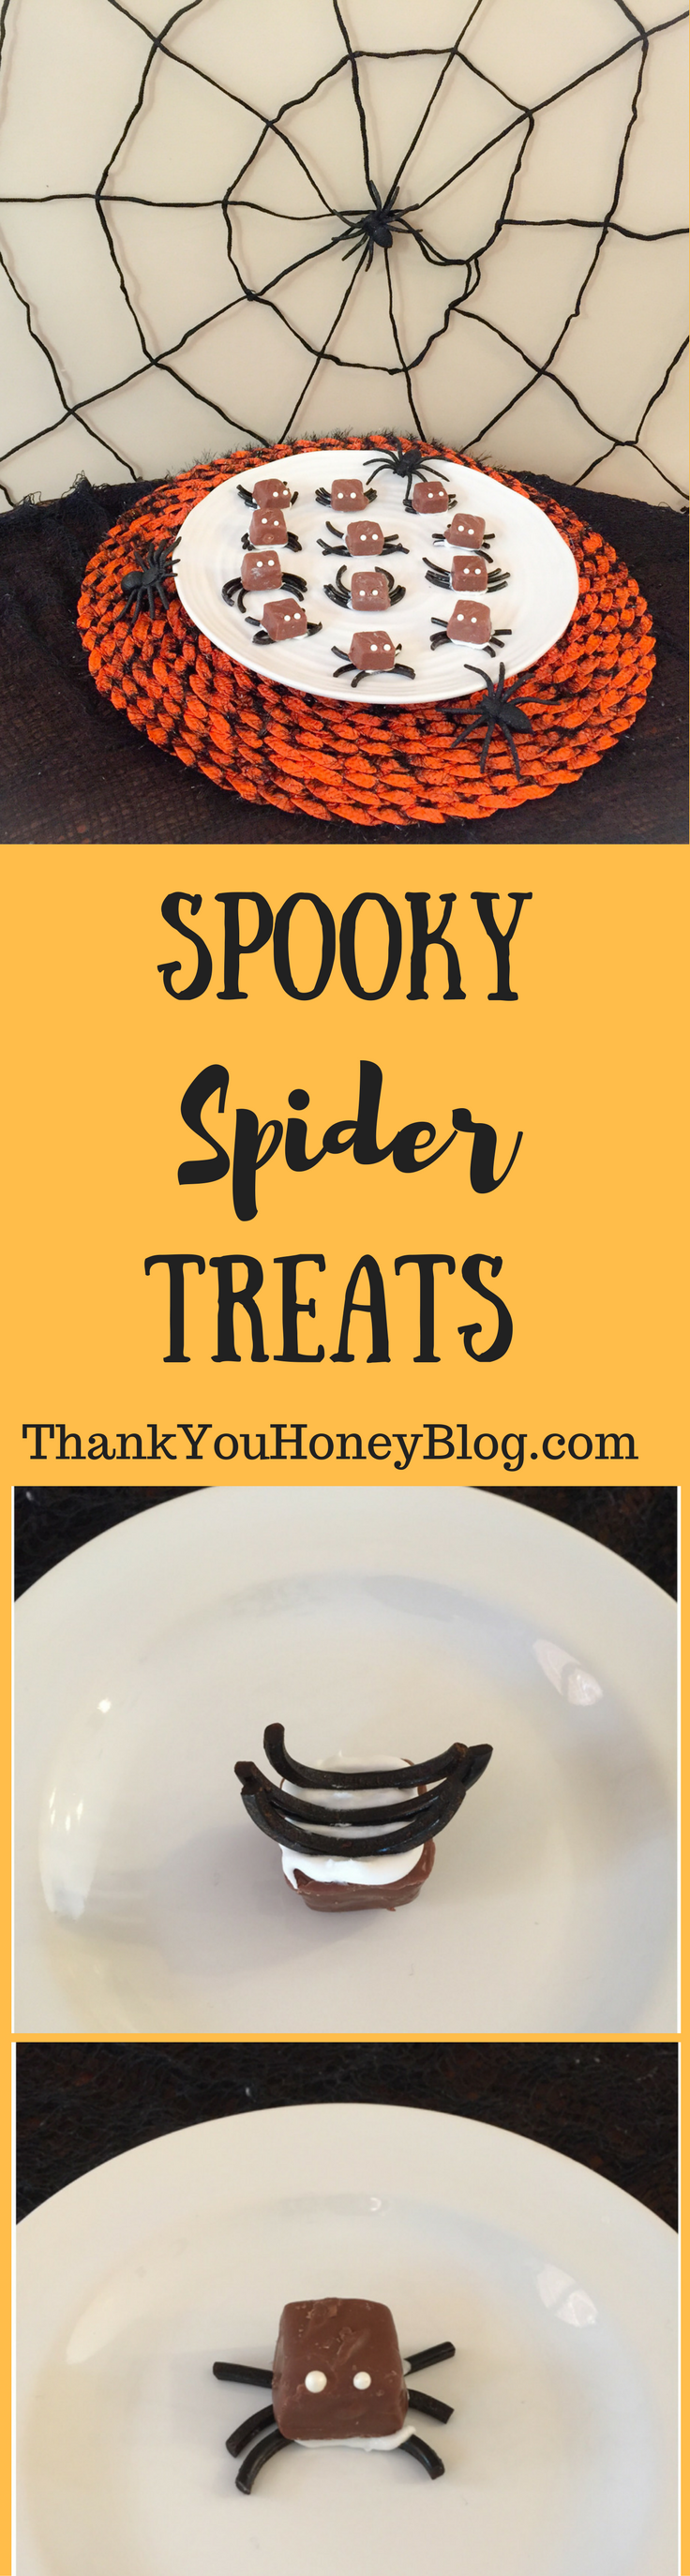 Spooky Spider Treats